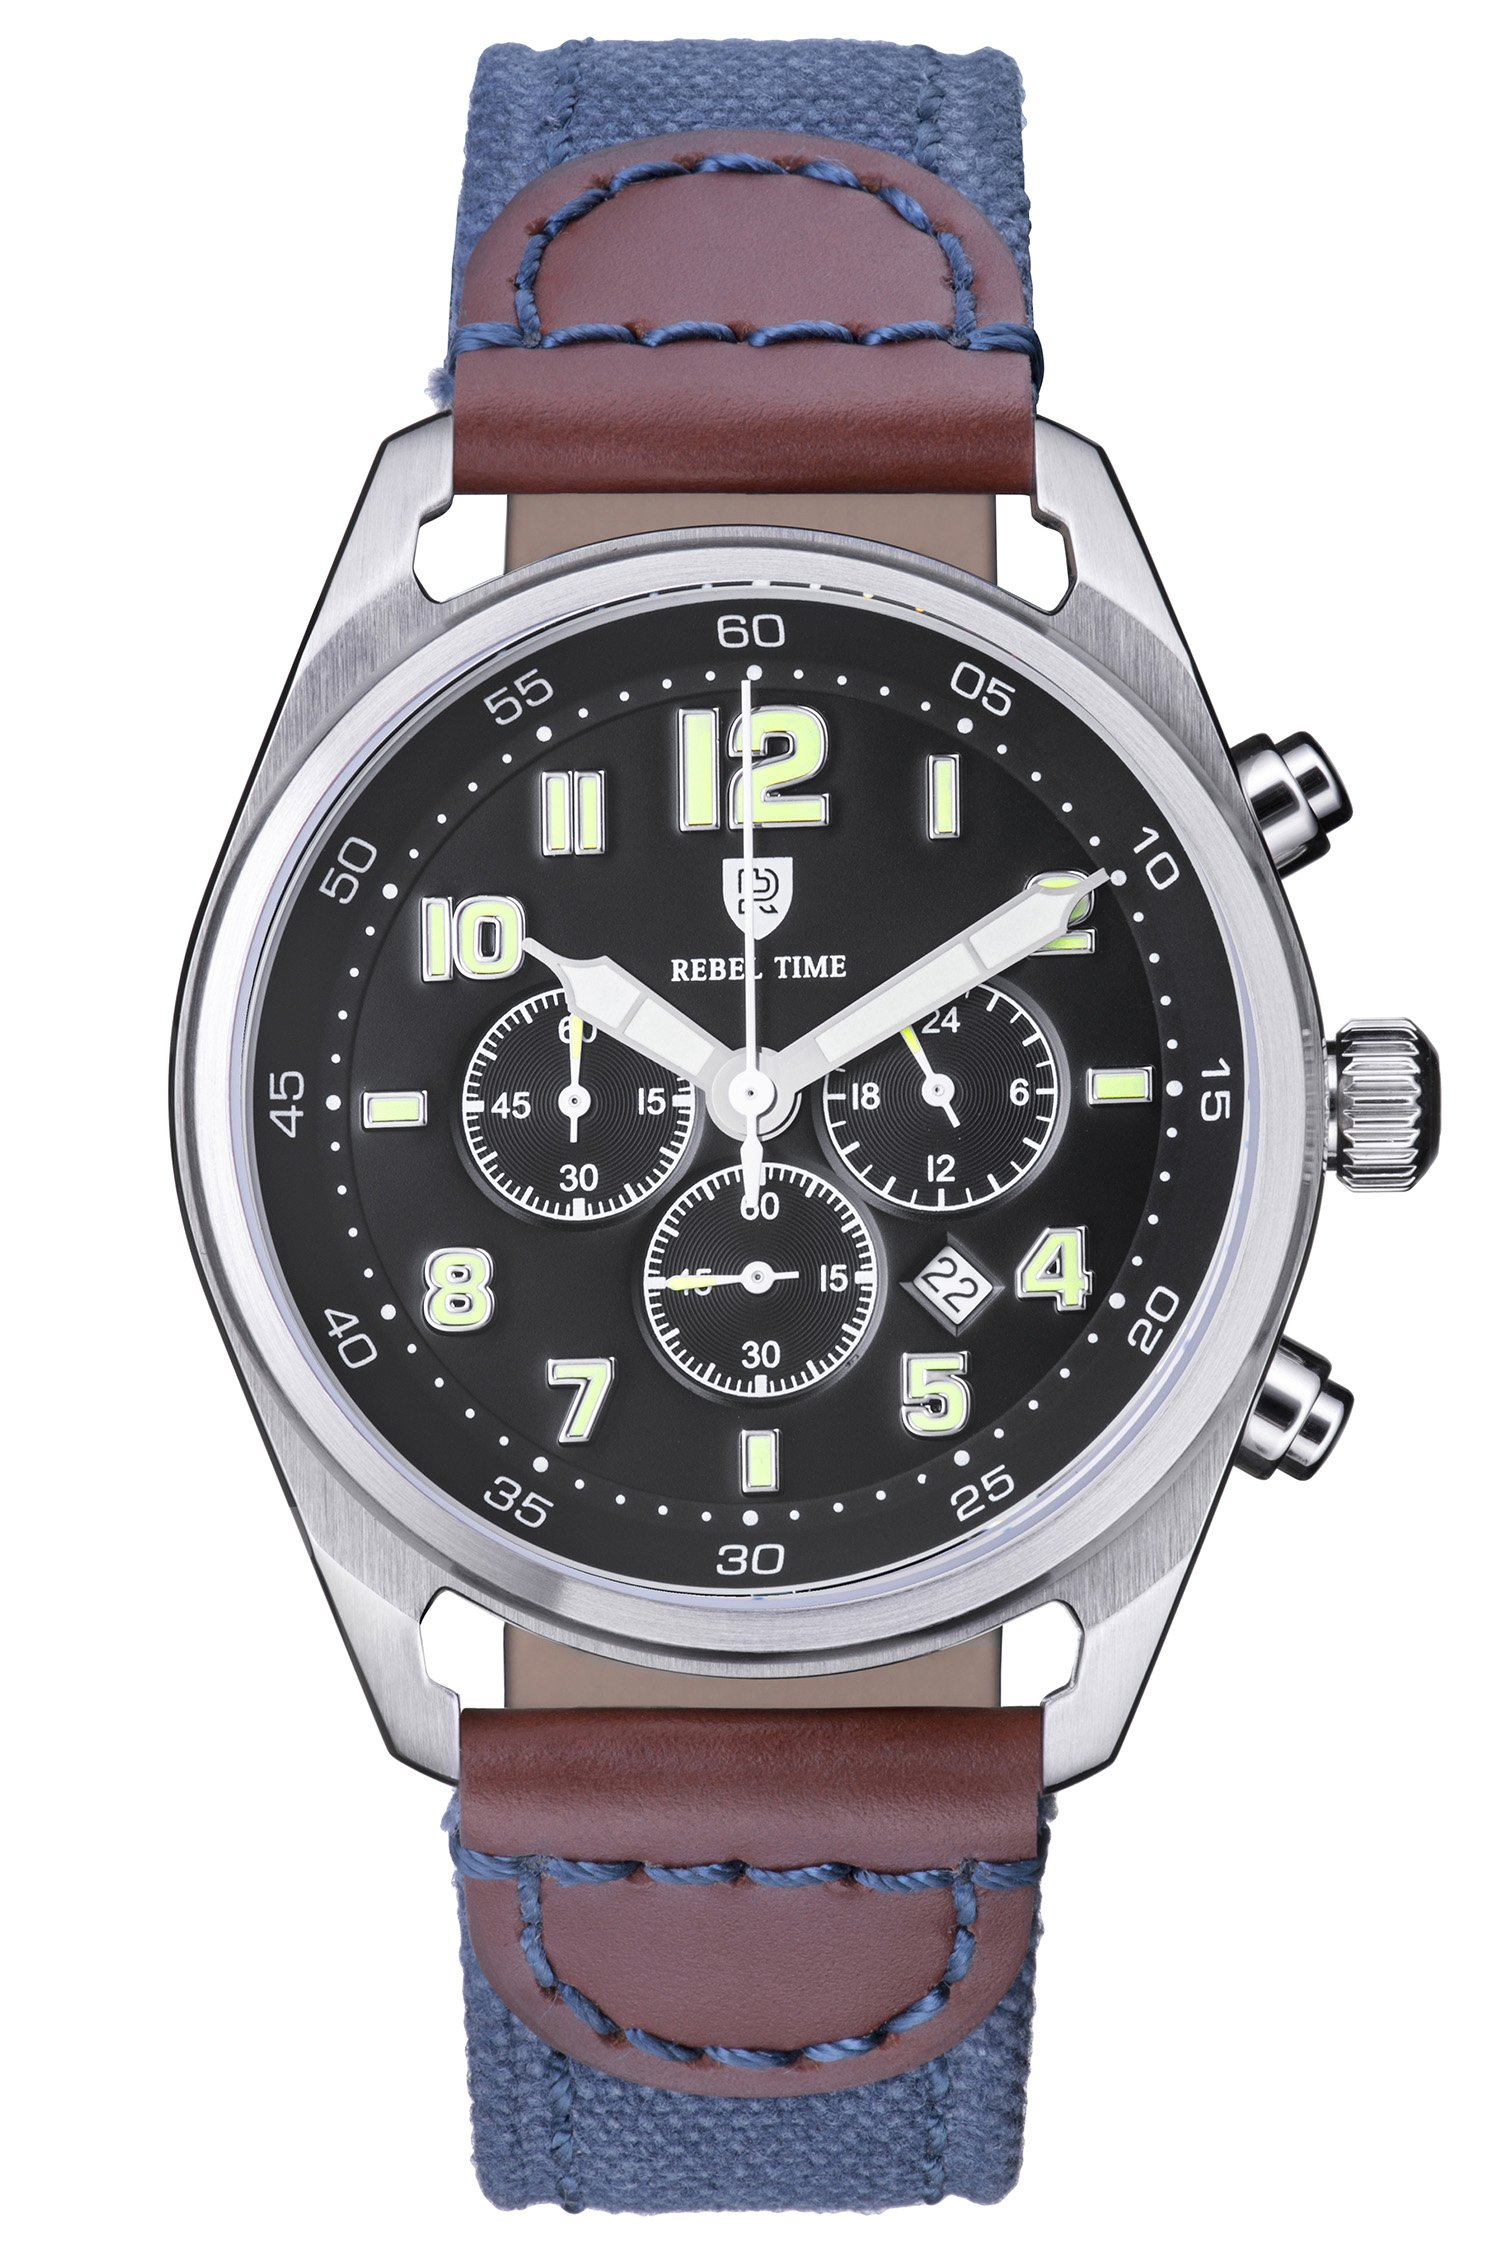 Rebel Men's Classic Black Stainless Steel Chronograph 100 Meter WR Field Watch